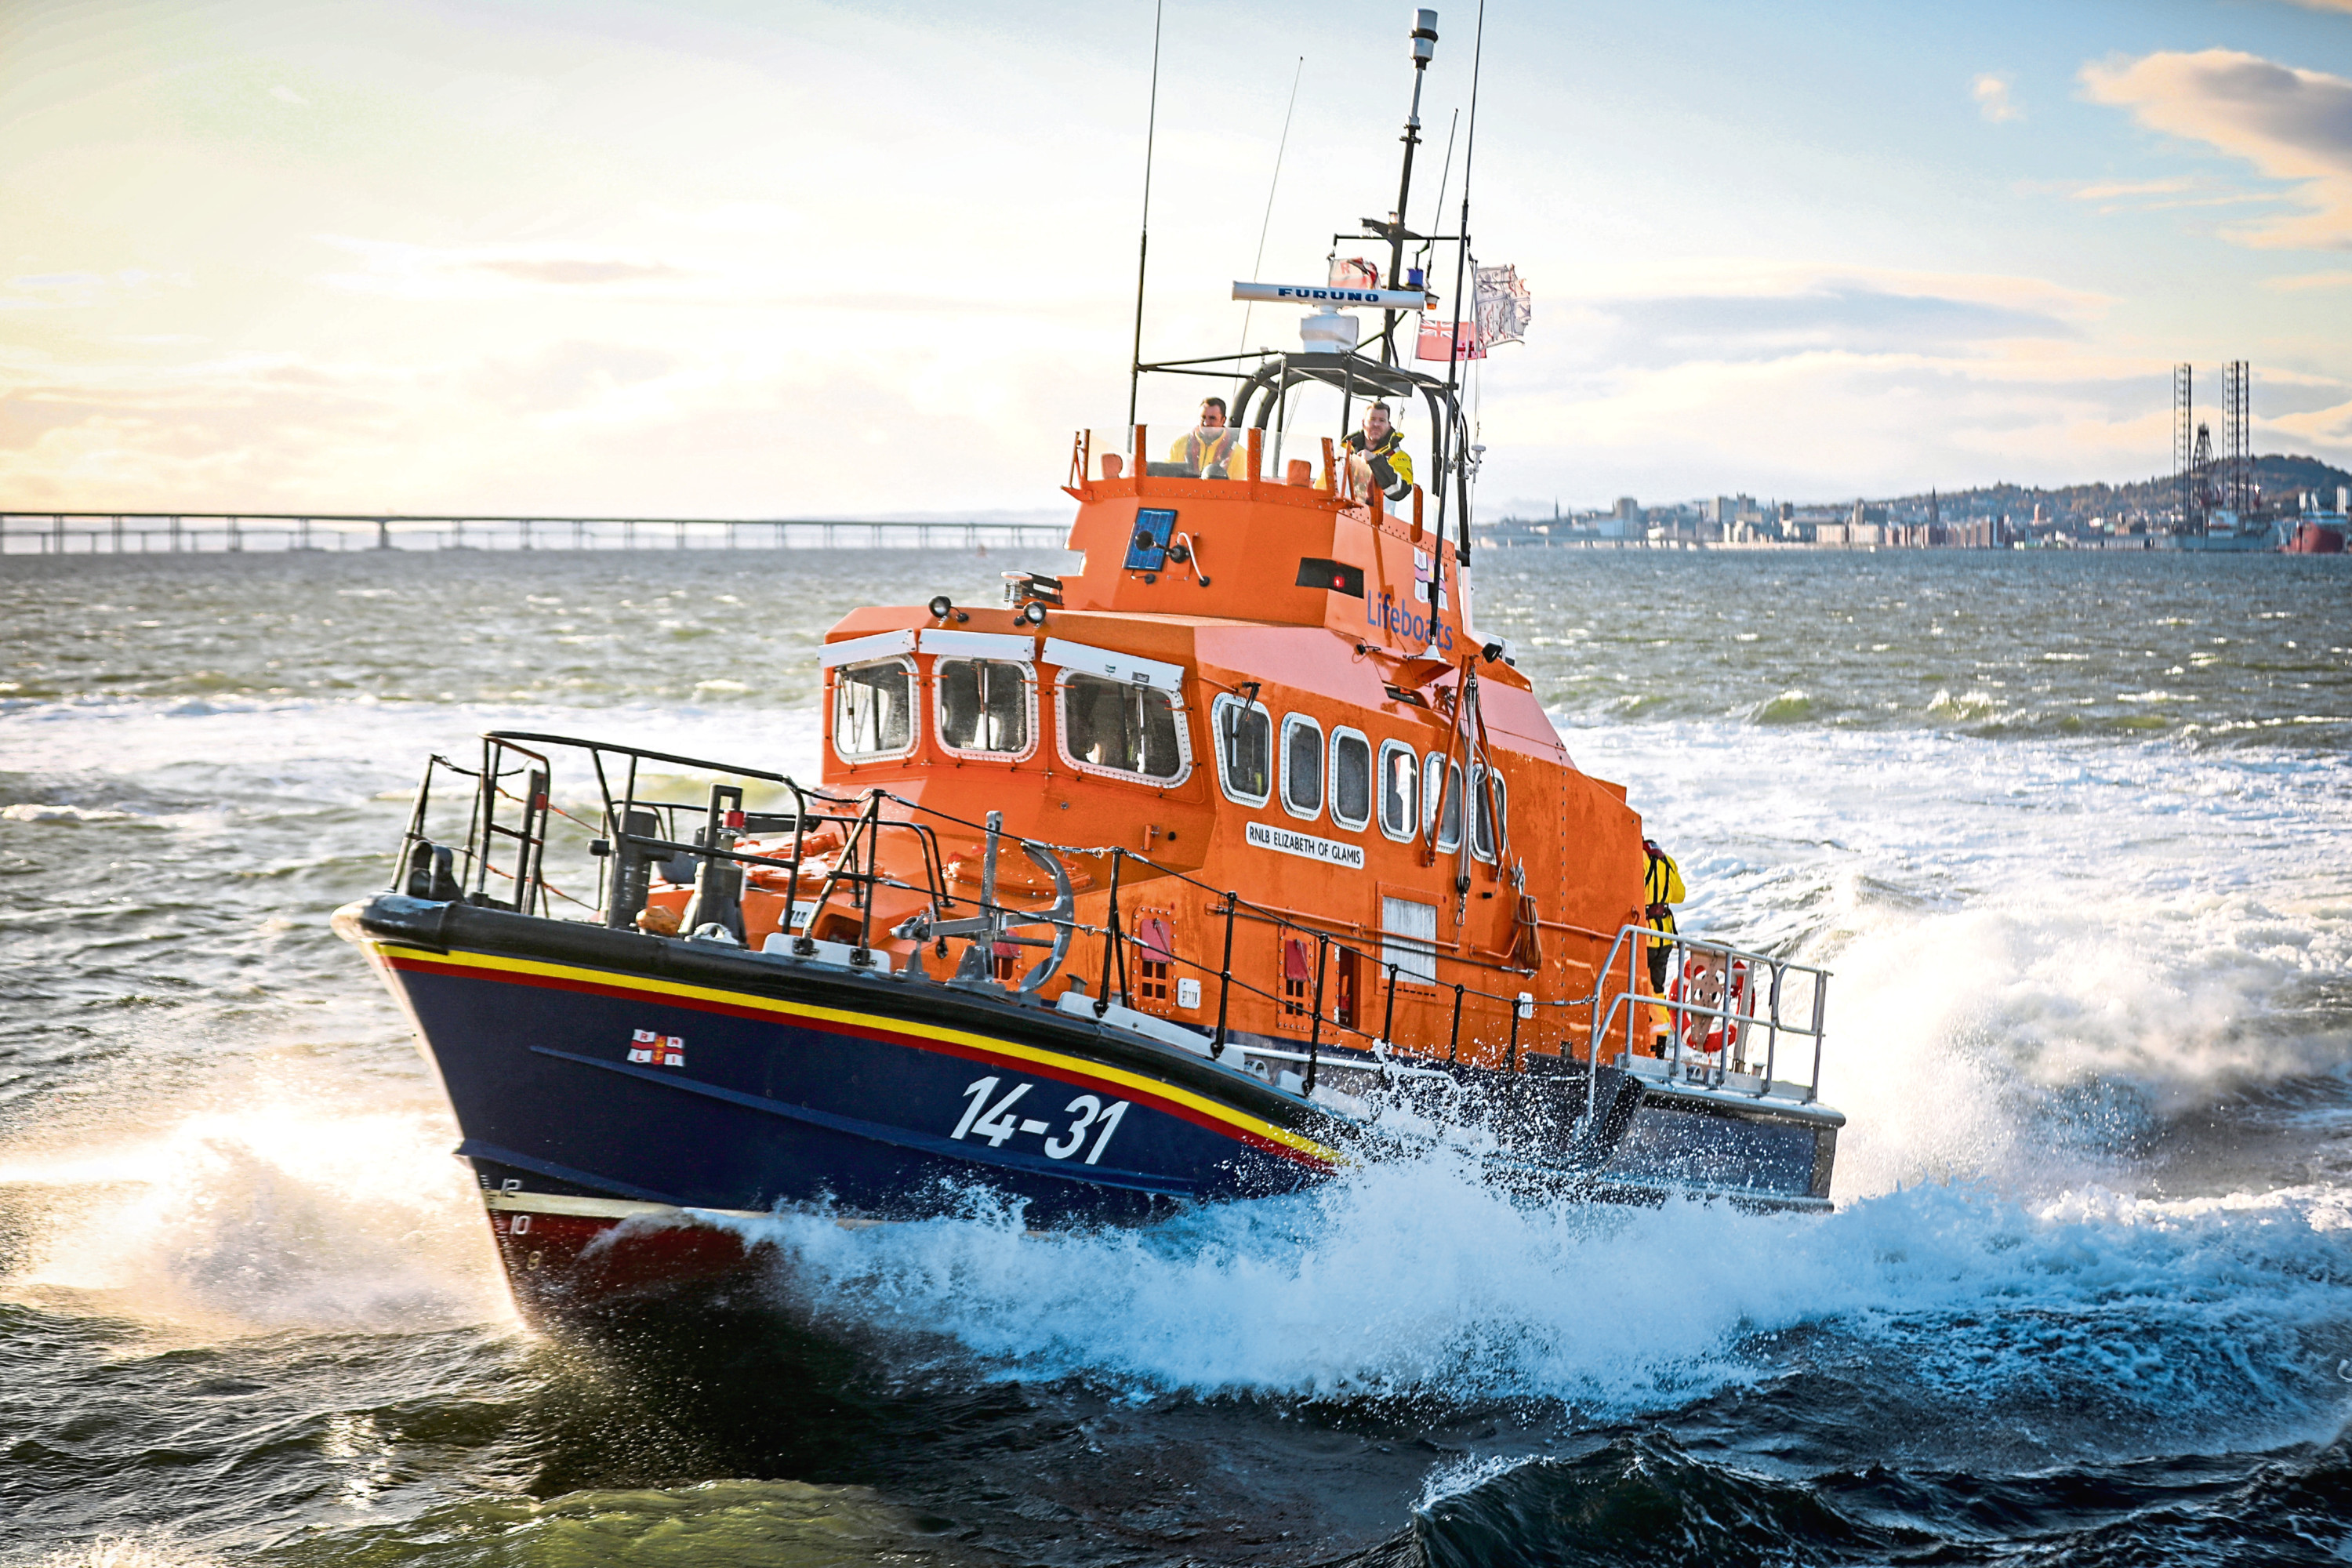 A Broughty Ferry lifeboat in action (stock image)